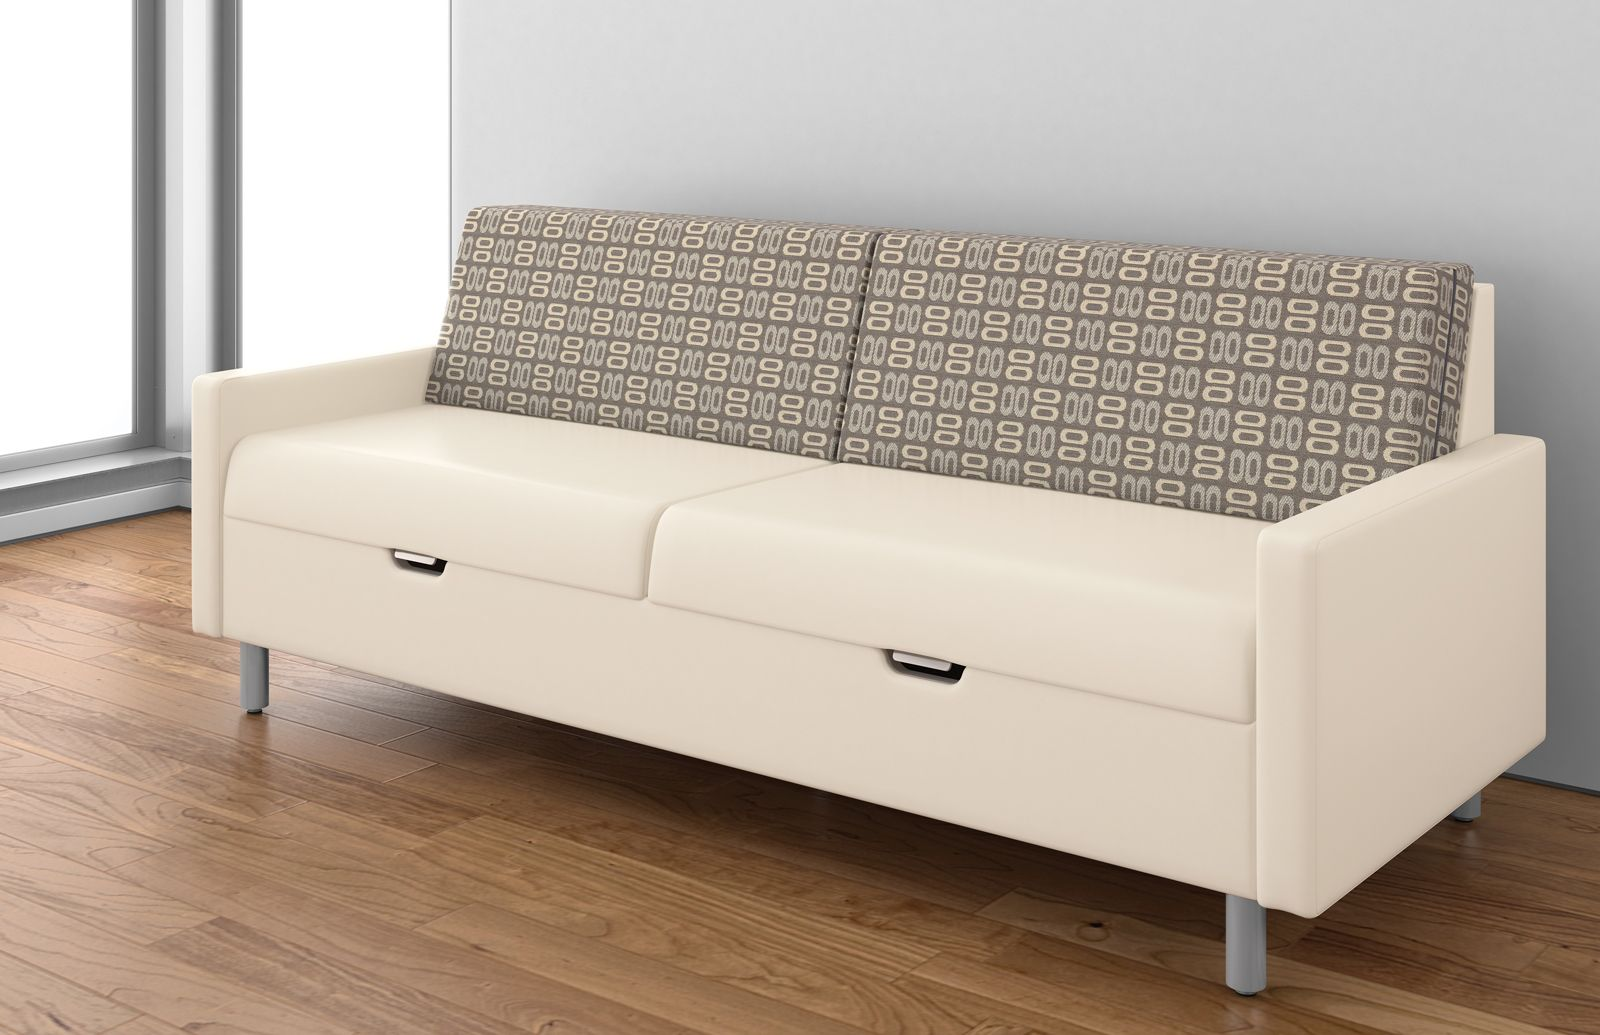 - Amelio Sleep Sofa Was Designed For Use With All Floorplans, Even